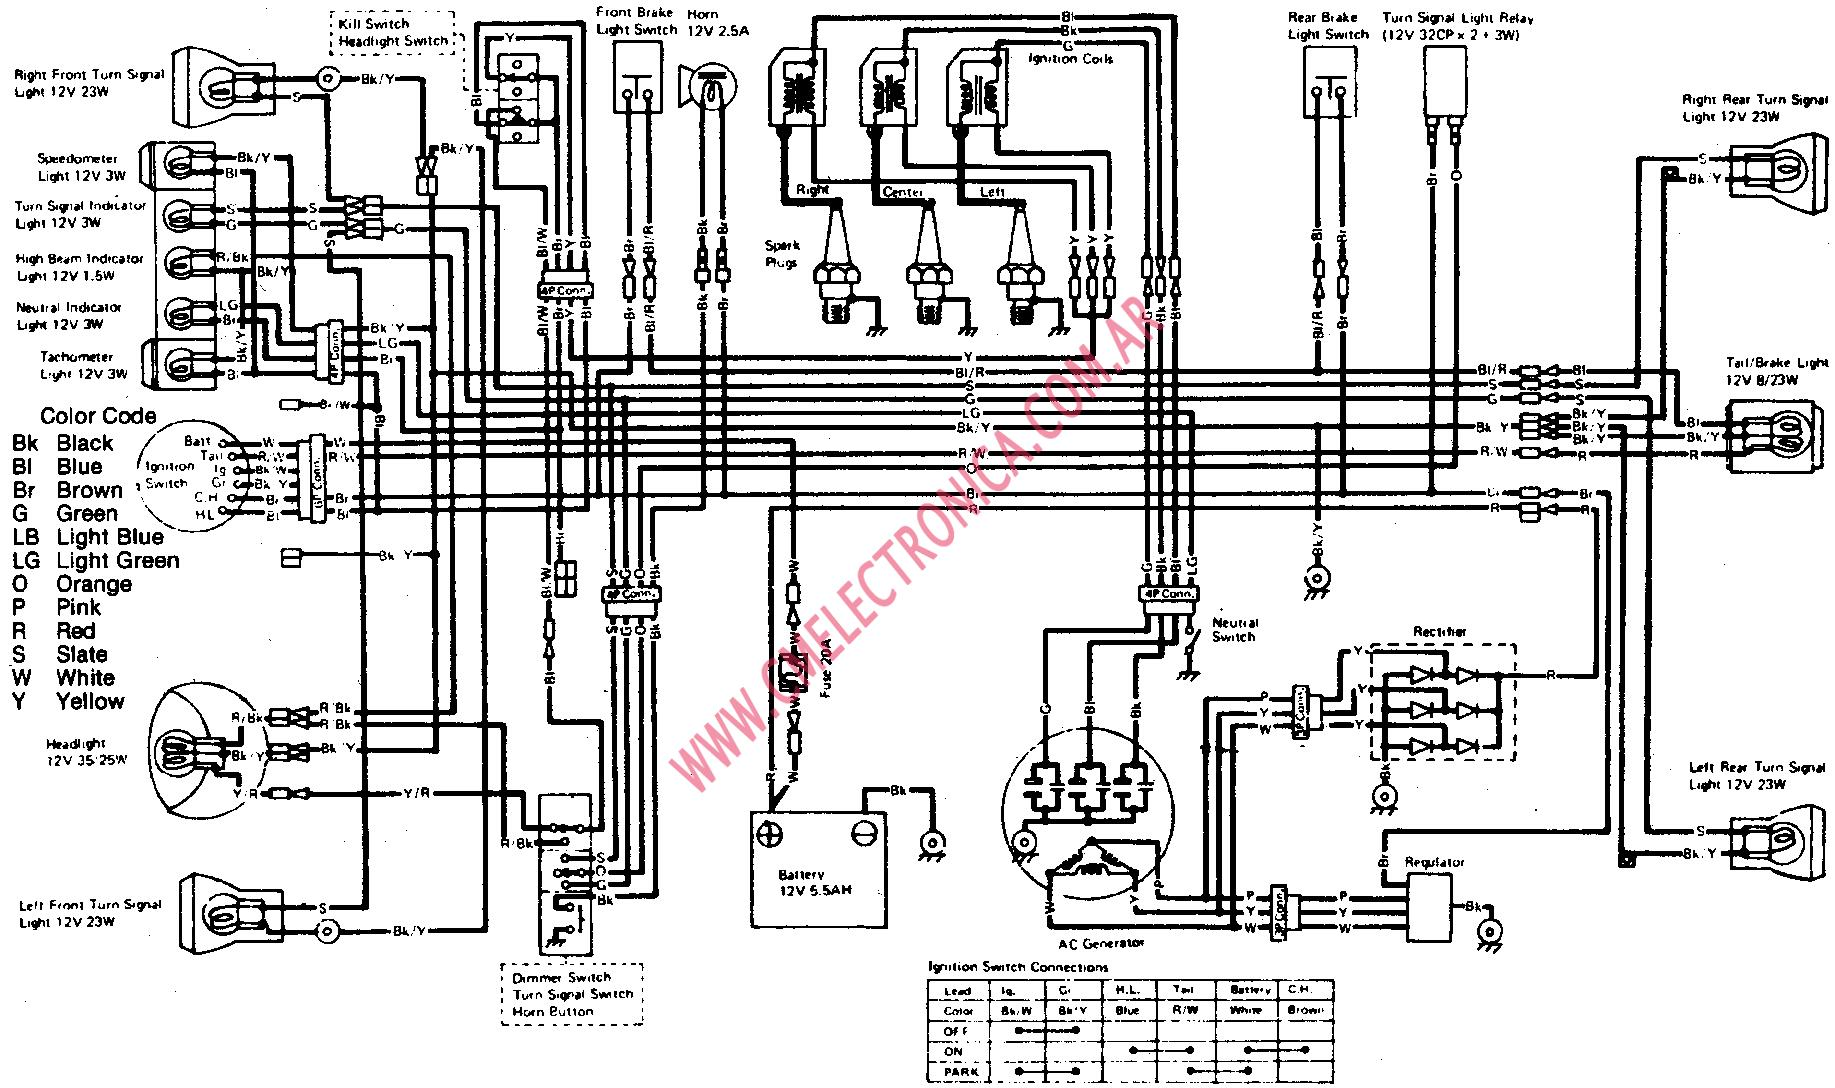 2008 Kawasaki 650 Klr Wiring Diagram Klf 250 Schematic Opinions About Bayou 400 Get Free Image 2005 2000